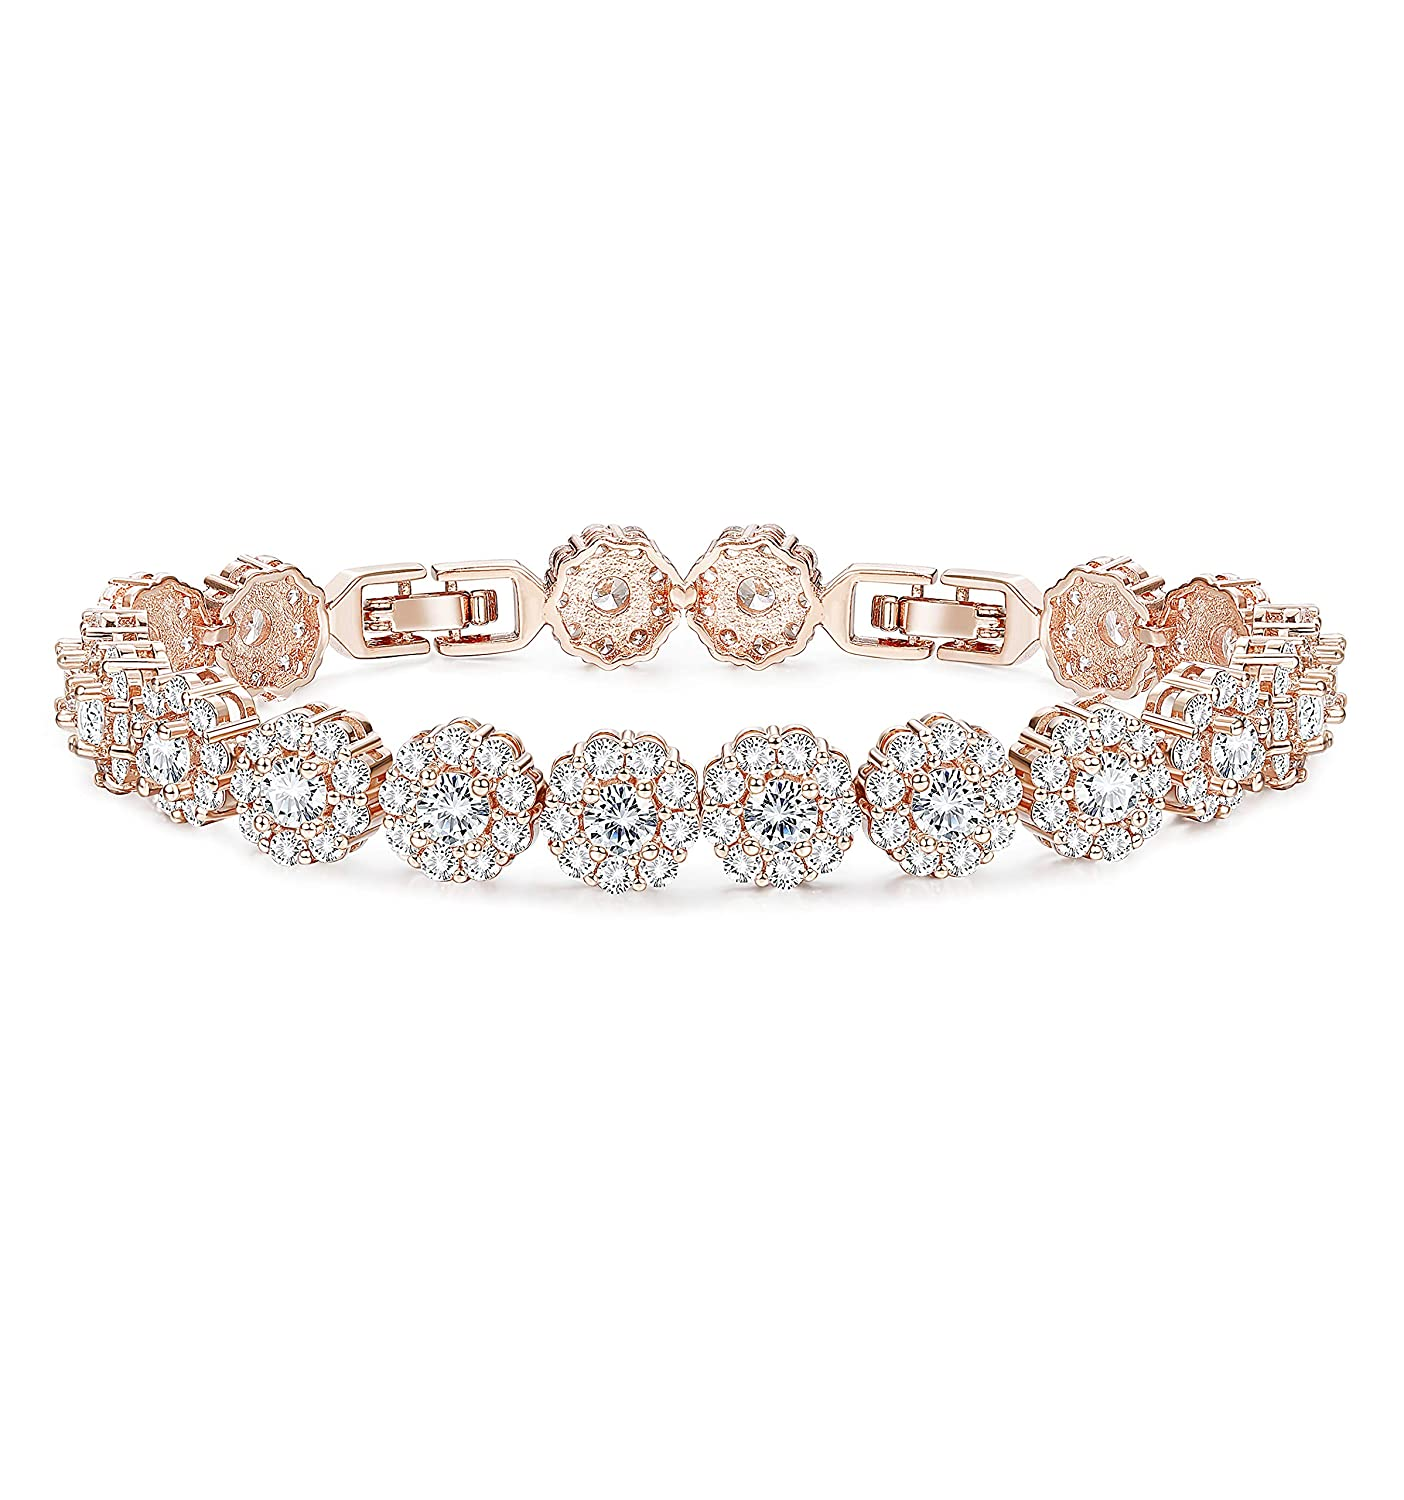 5e1dc7d22b ✦✦WEDDING EWELRY: AAA+ cut cubic zirconia inlay,sparkle and shiny,Ideal for  Wedding. Beautiful bracelet with sparkling stones in gorgeous rose gold ...